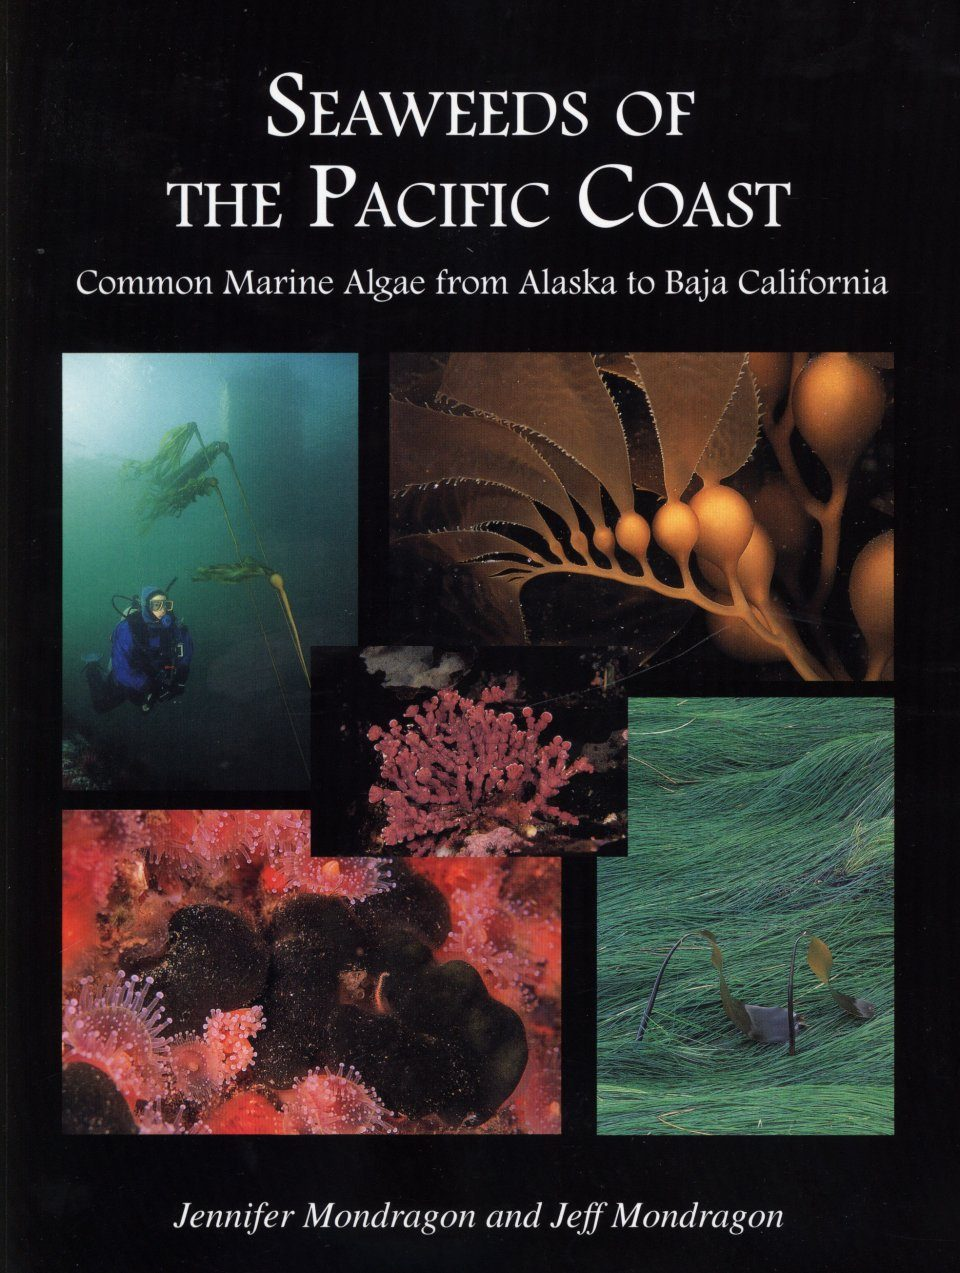 Seaweeds of the Pacific Coast